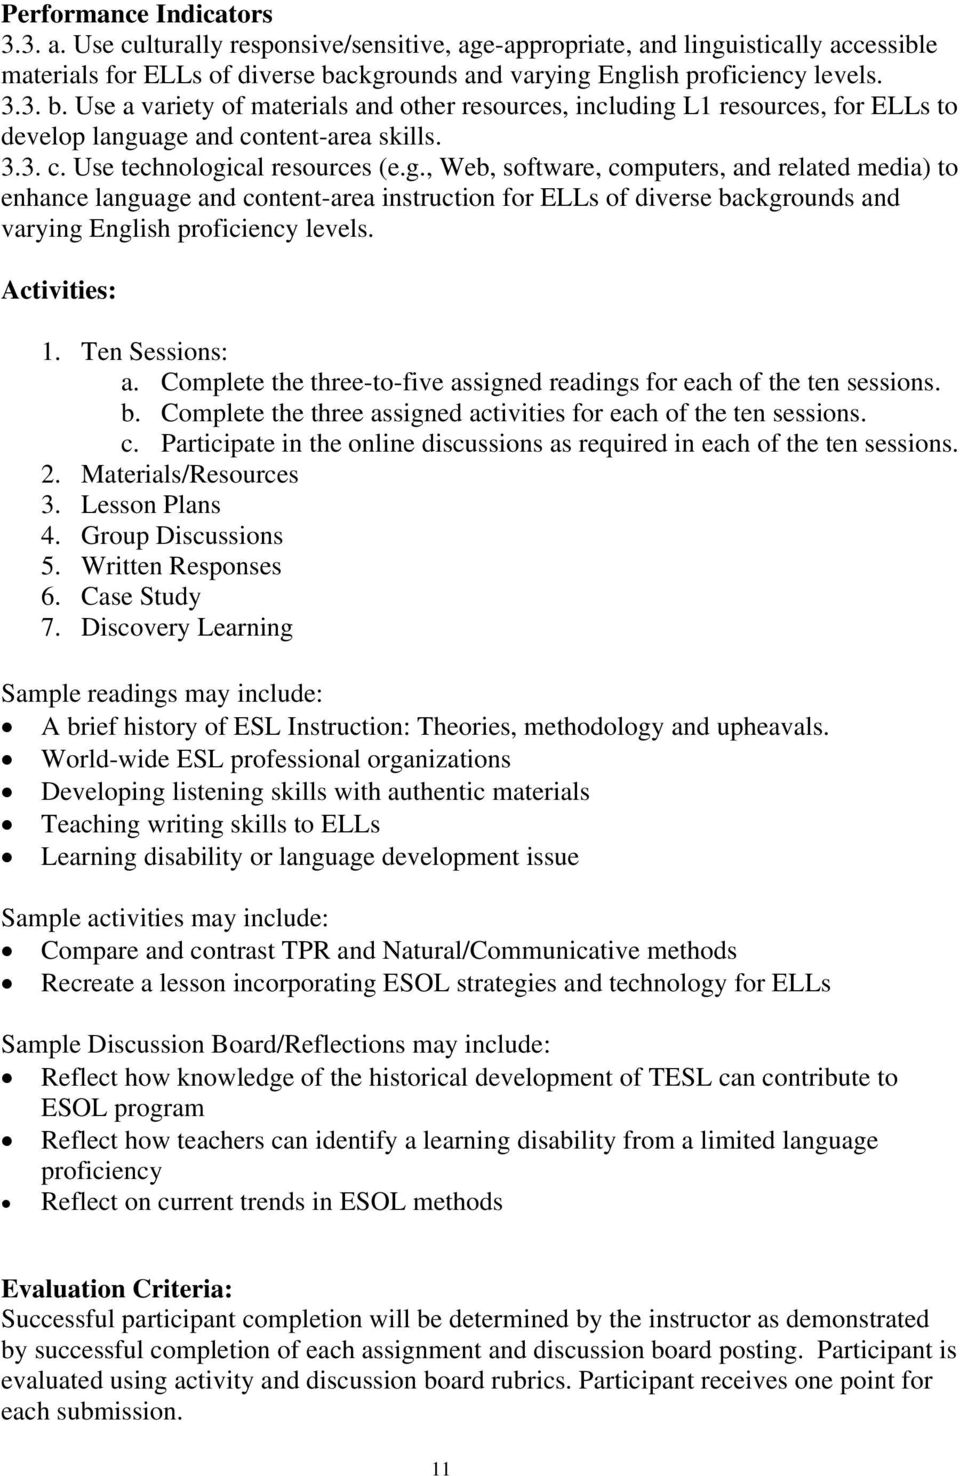 g., Web, software, computers, and related media) to enhance language and content-area instruction for ELLs of diverse backgrounds and varying English proficiency levels. Activities: 1.